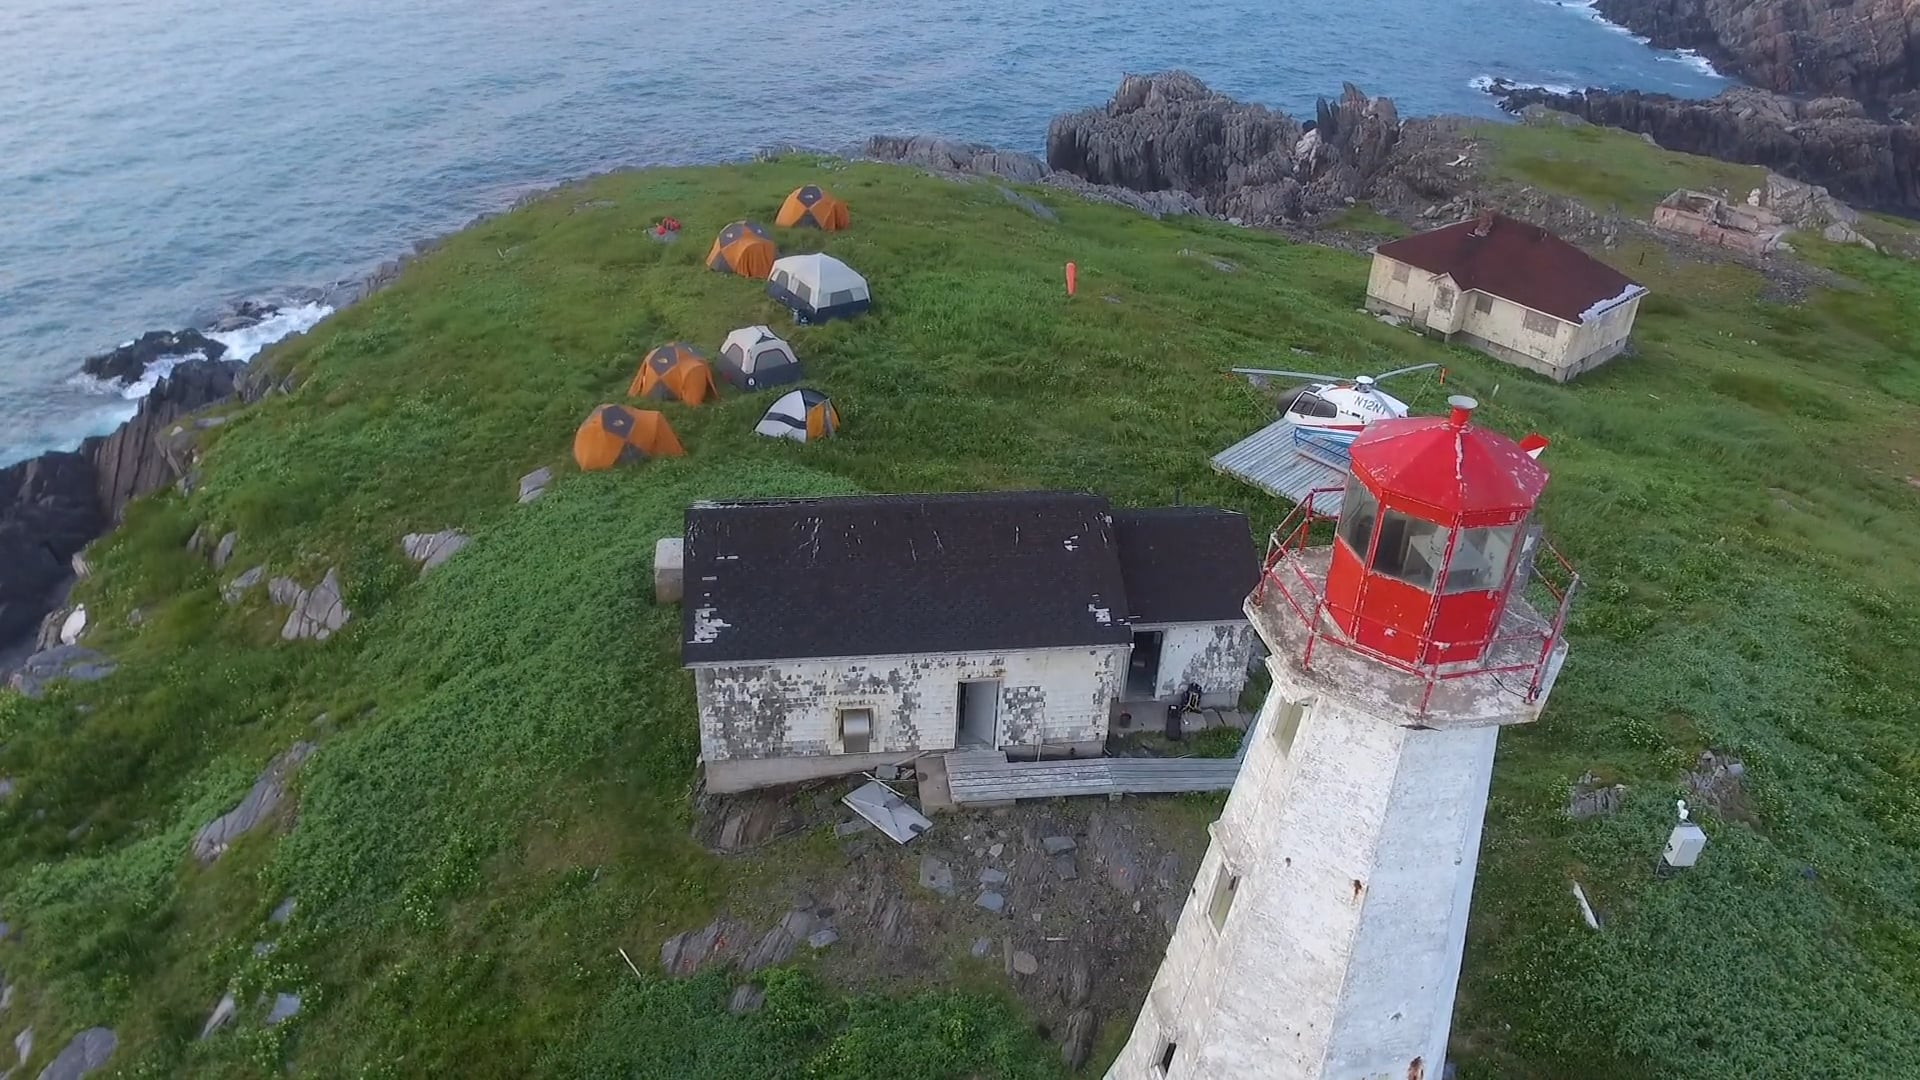 Video – CY9C, St Paul Island